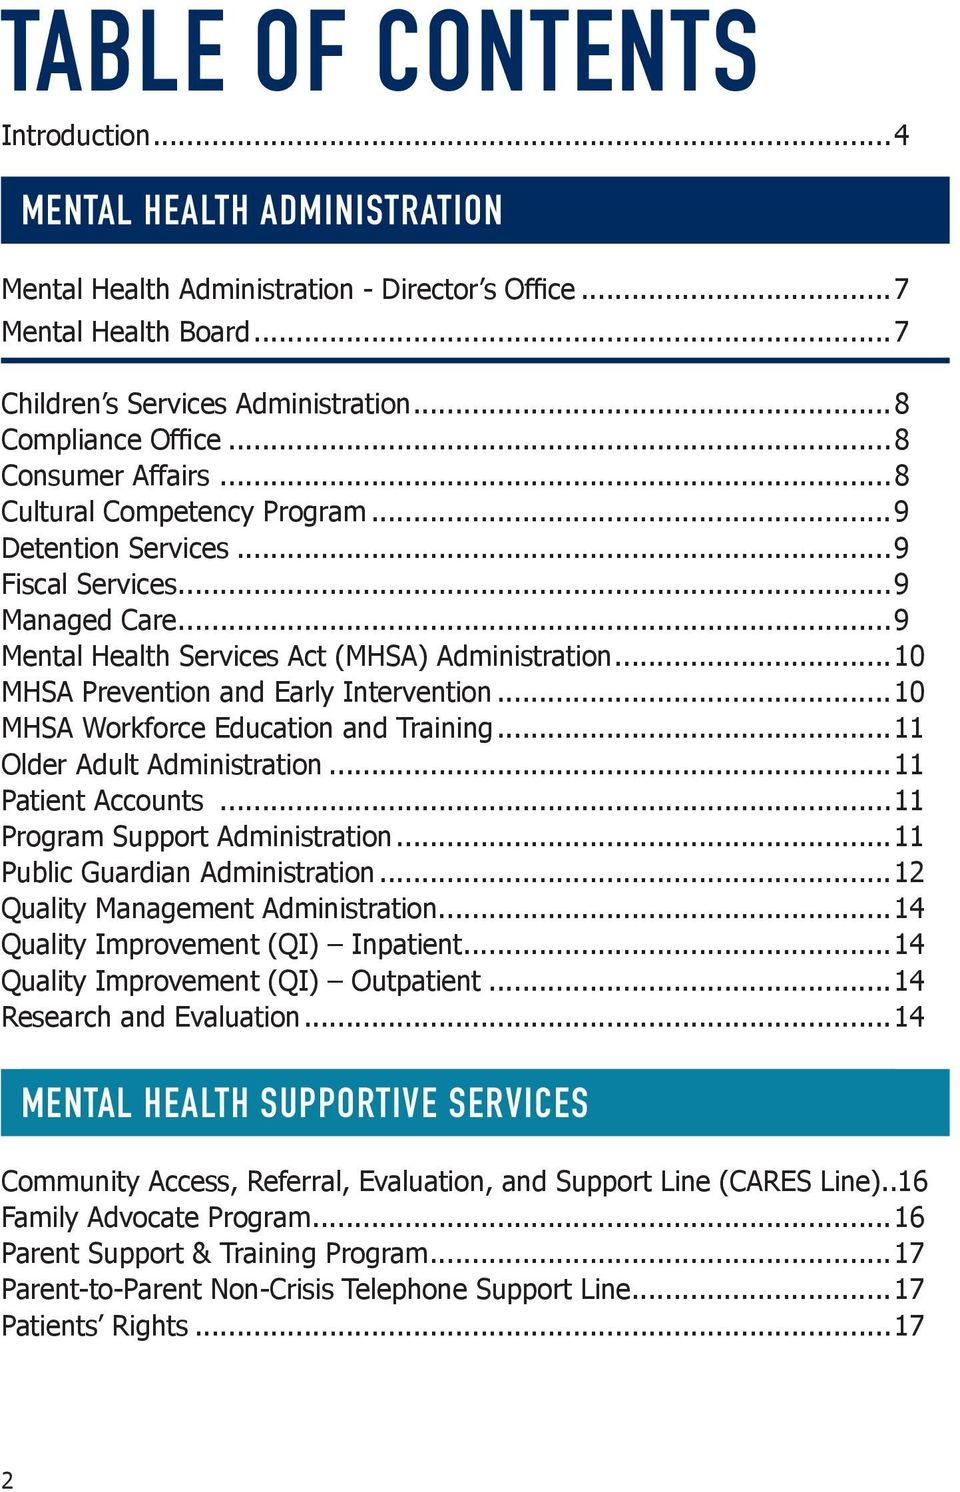 ..10 MHSA Prevention and Early Intervention...10 MHSA Workforce Education and Training...11 Older Adult Administration...11 Patient Accounts...11 Program Support Administration.